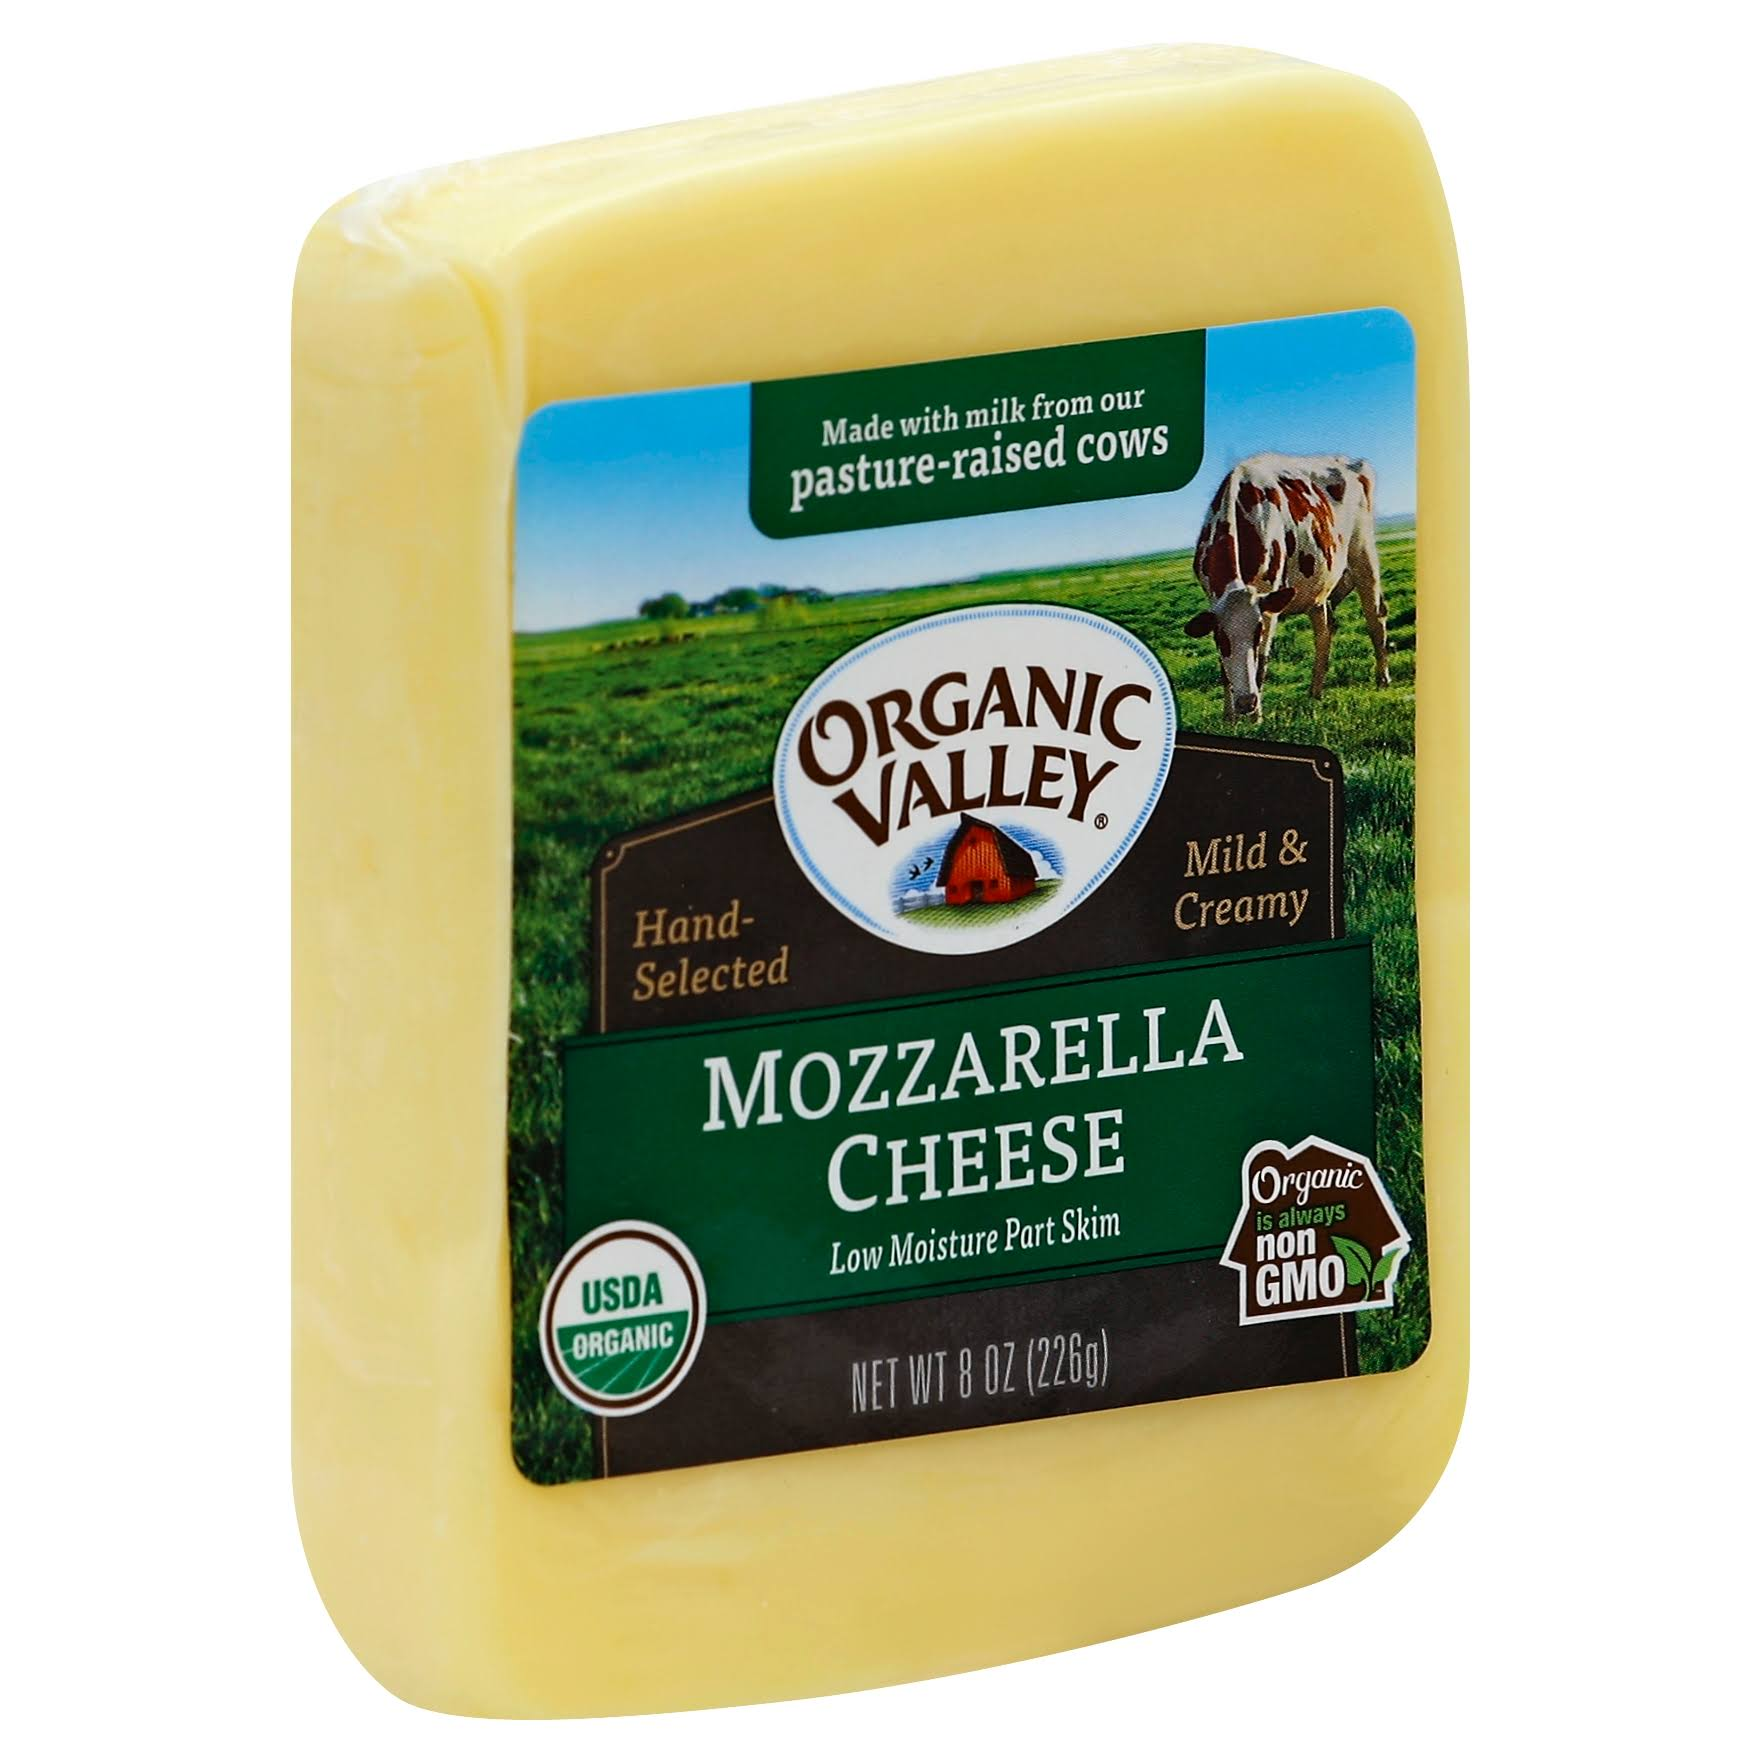 Organic Valley Cheese - Mozzarella